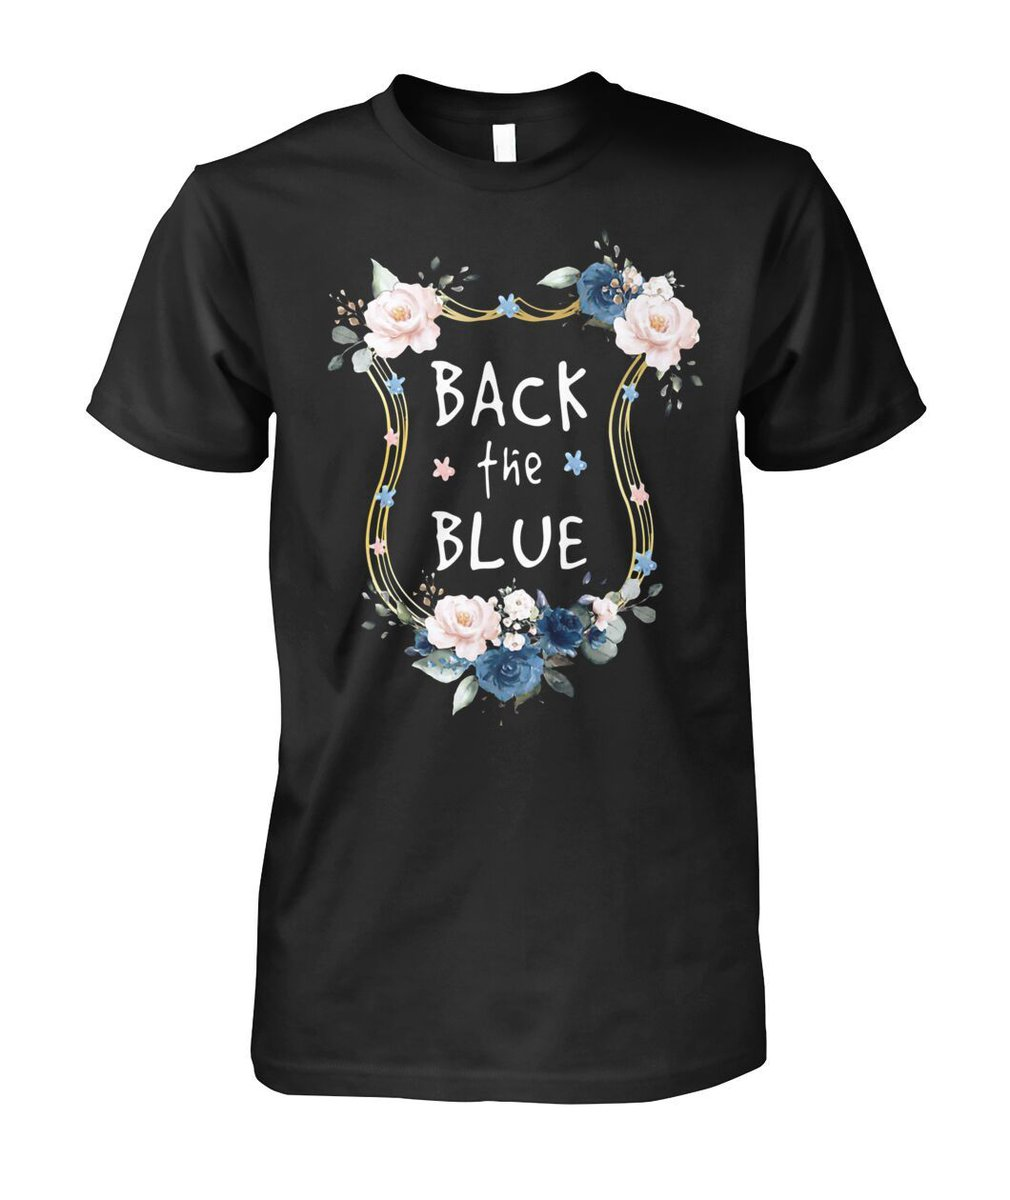 BACK THE BLUE SHIRT Buy here: https://buff.ly/2Zq8xRI  Available in Multiple styles and colors #viralstyle #usa #us #tshirt #hoodie #tee #hottrend #quote #shirt #shirts #shirtless #shirtlessguys #shirtdesign #ShirtOfTheDay #shirtdress #shirtlessboys #shirtlessmen #shirtlessguypic.twitter.com/49LR6bvoIo